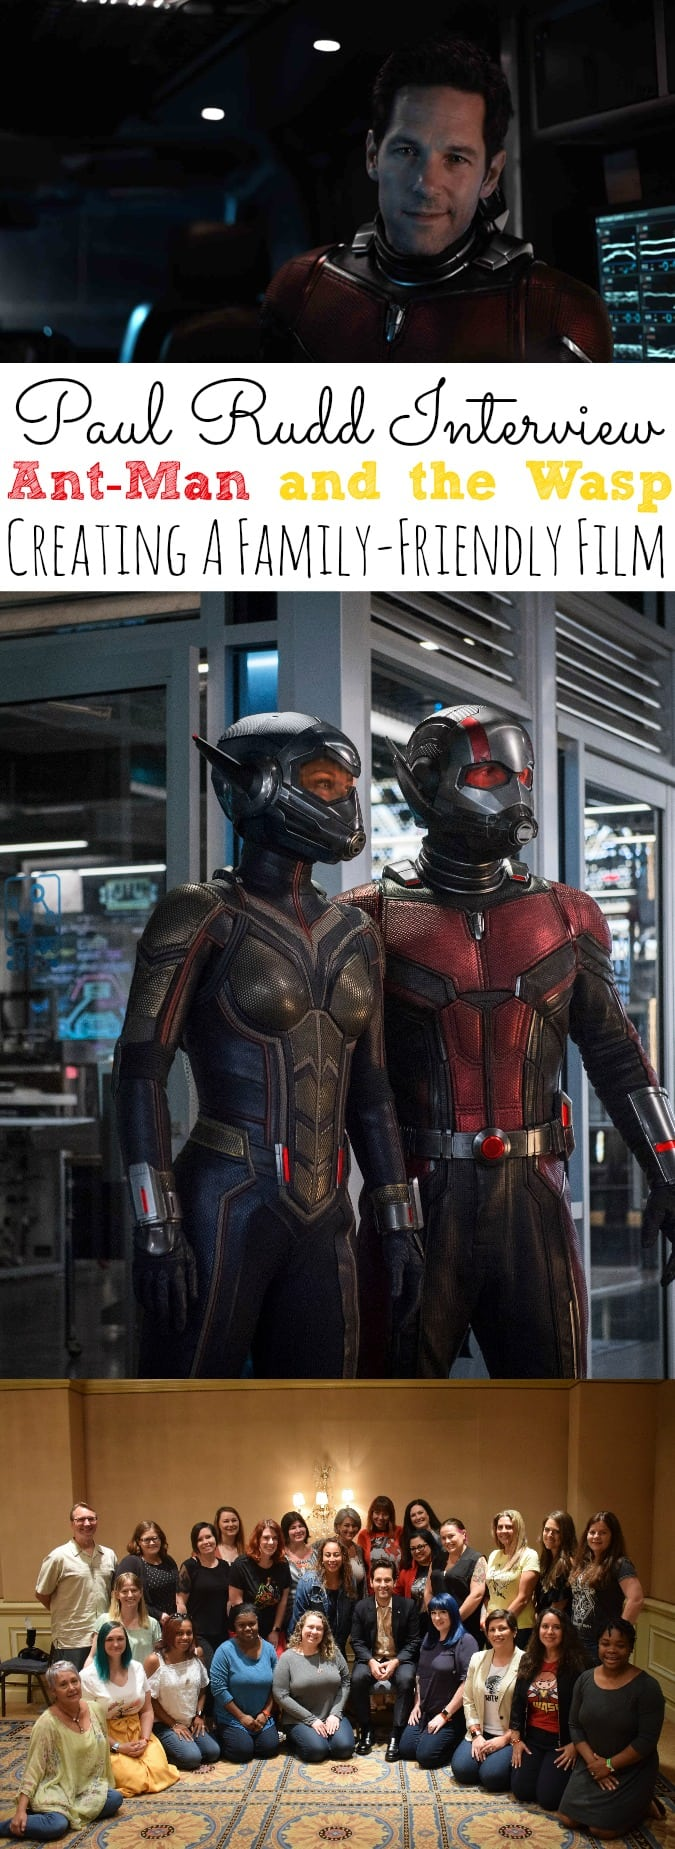 Paul Rudd Interview Ant-Man and the Wasp